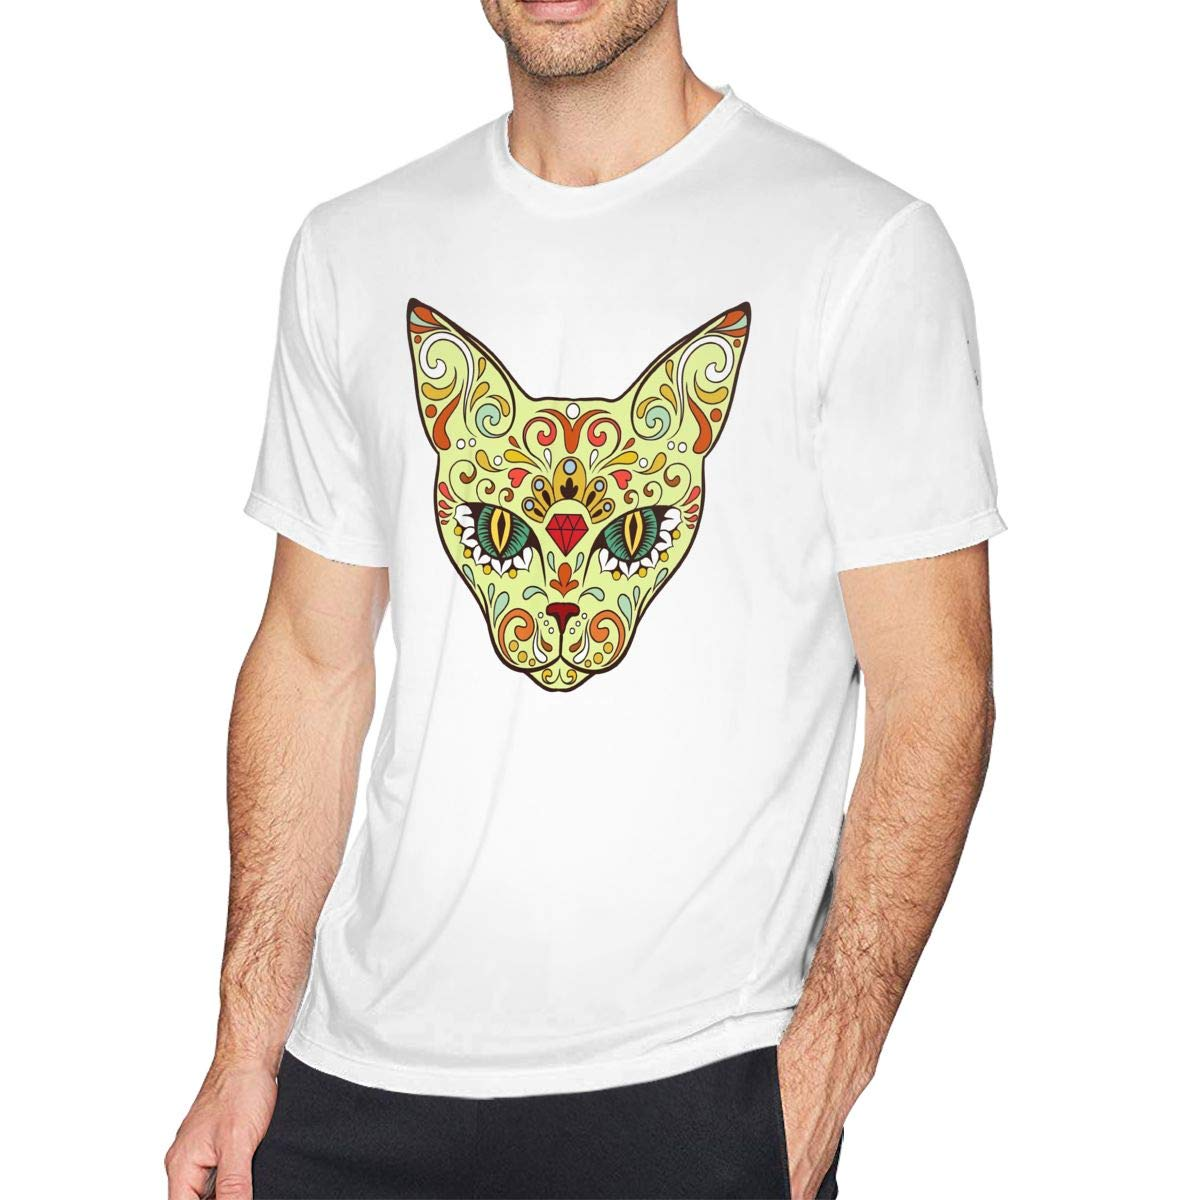 Casual Novelty Day Of The Dead Skull Crazy Cat Crew Neck Short Sleeve Tshirt Shirts Gifts